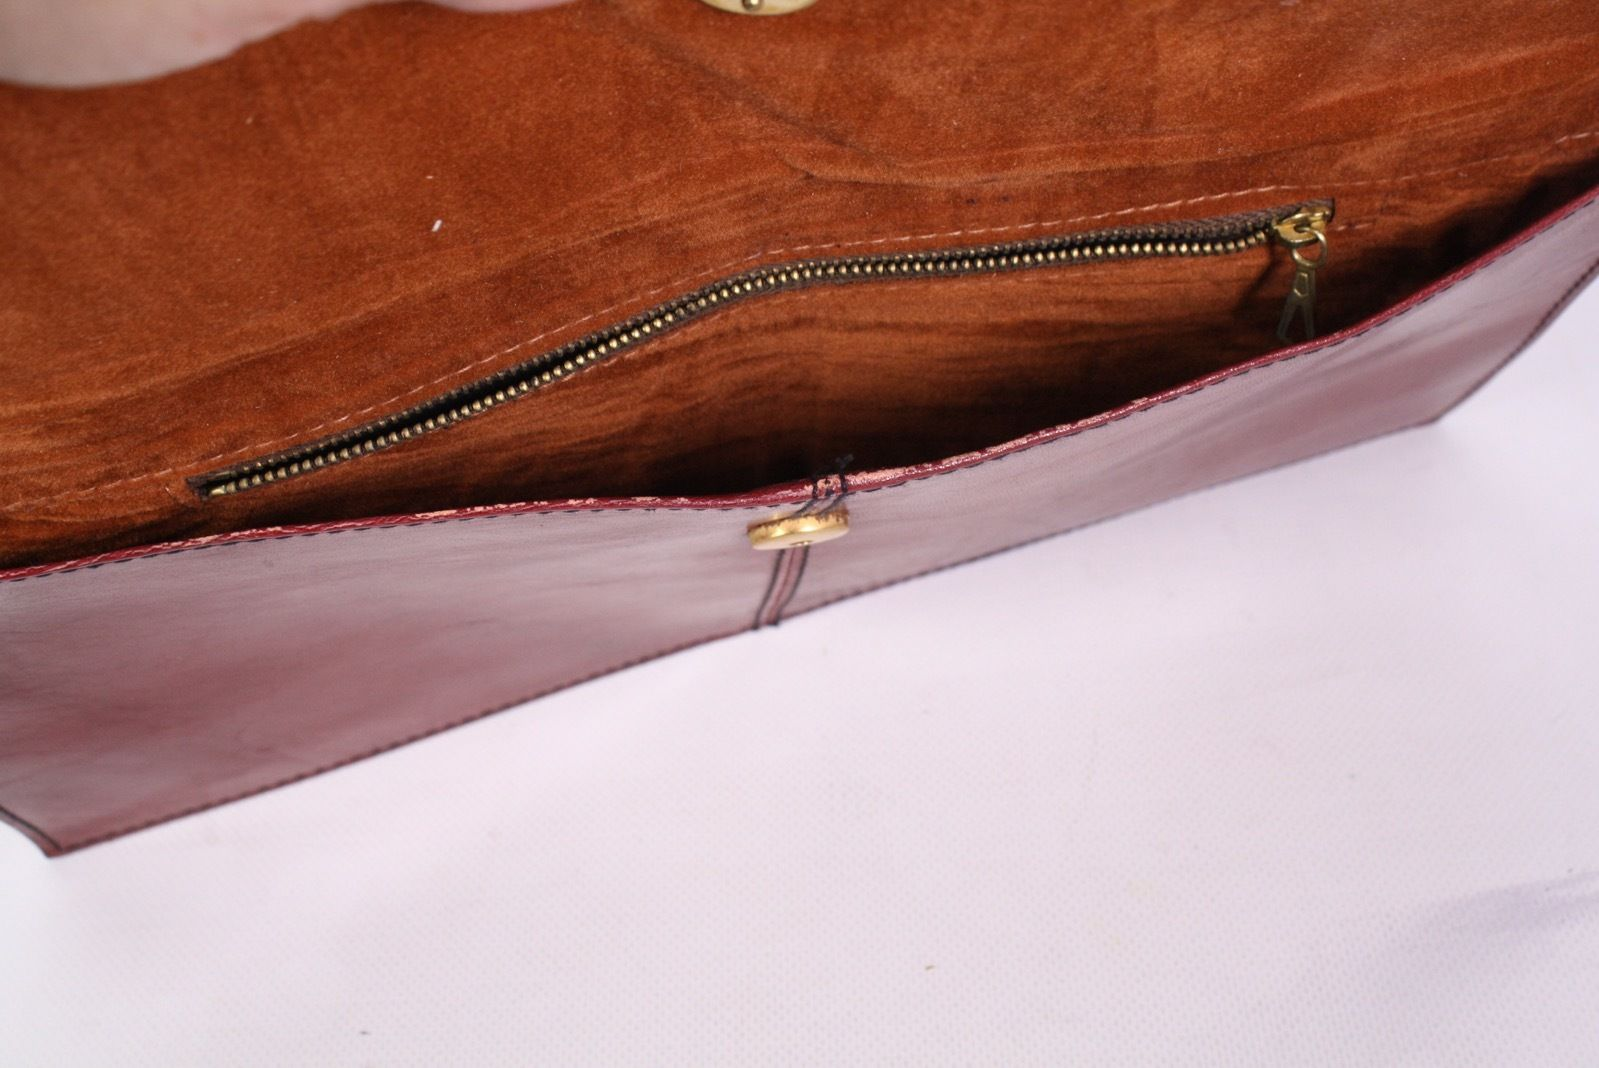 4B Michel Lamotte  Damen Tasche Clutch Bag Leder bordeaux Vintage Kuverttasche